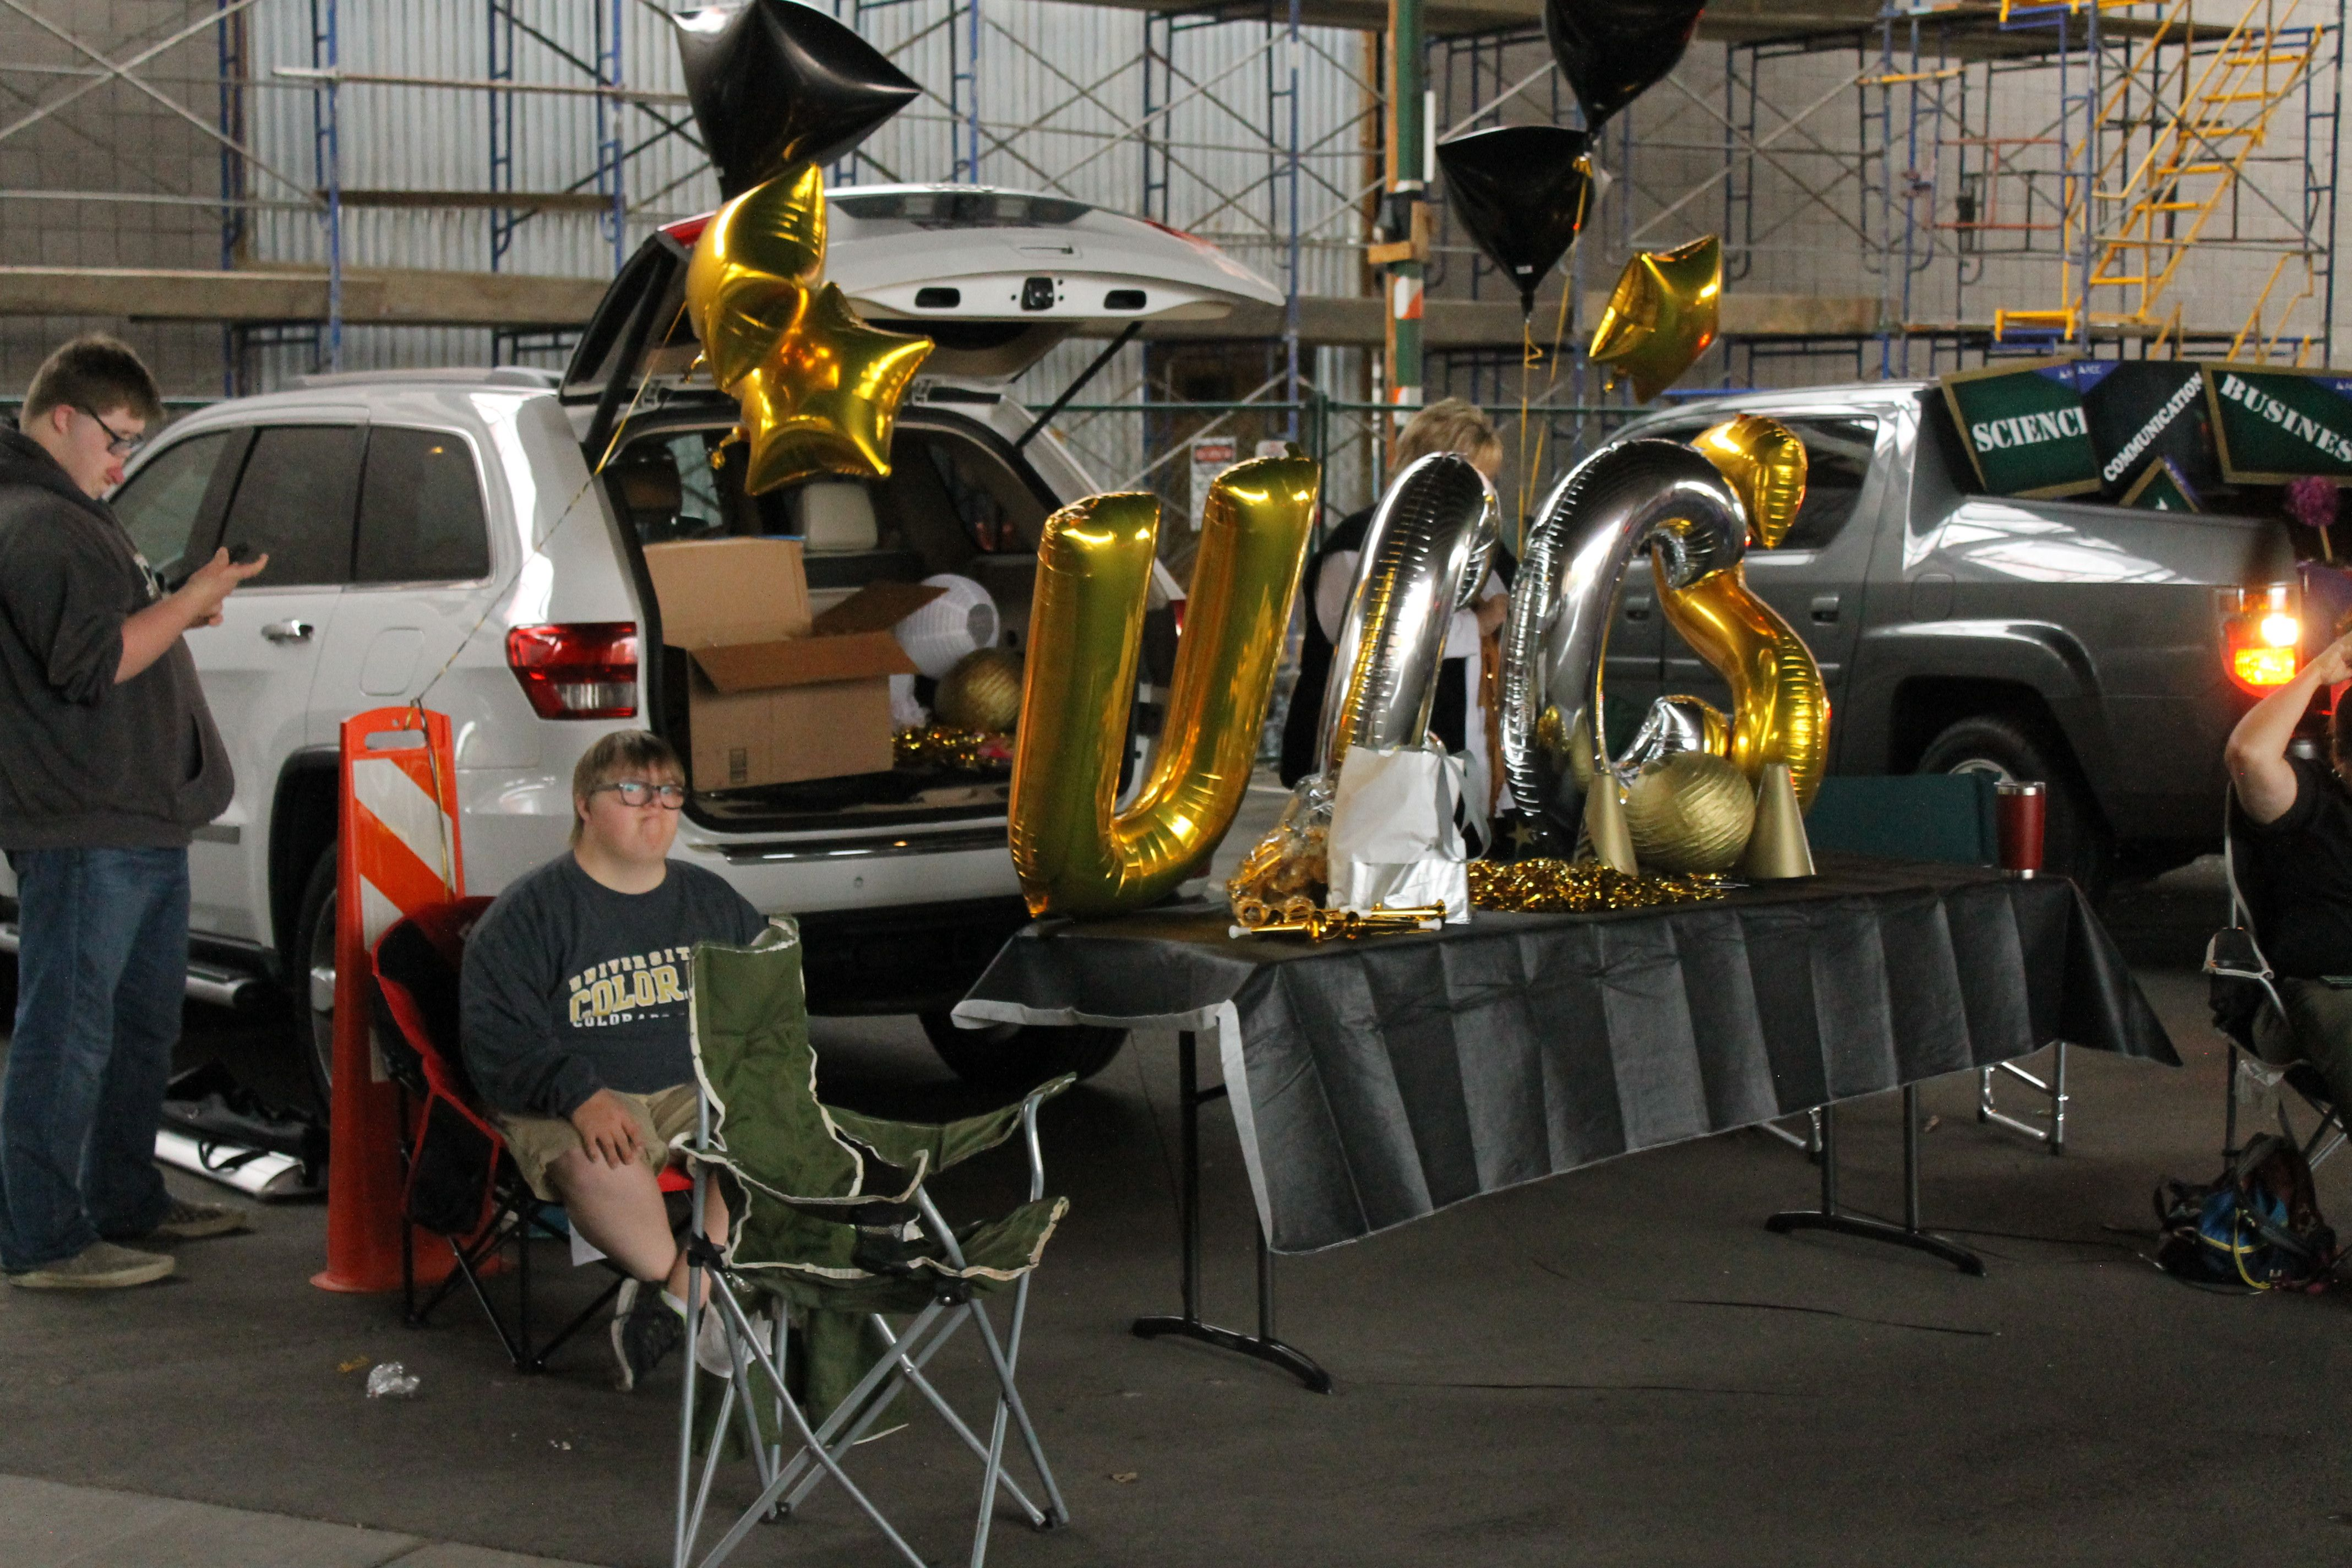 Man sits in sports chair next to table with large balloons reading UCCS